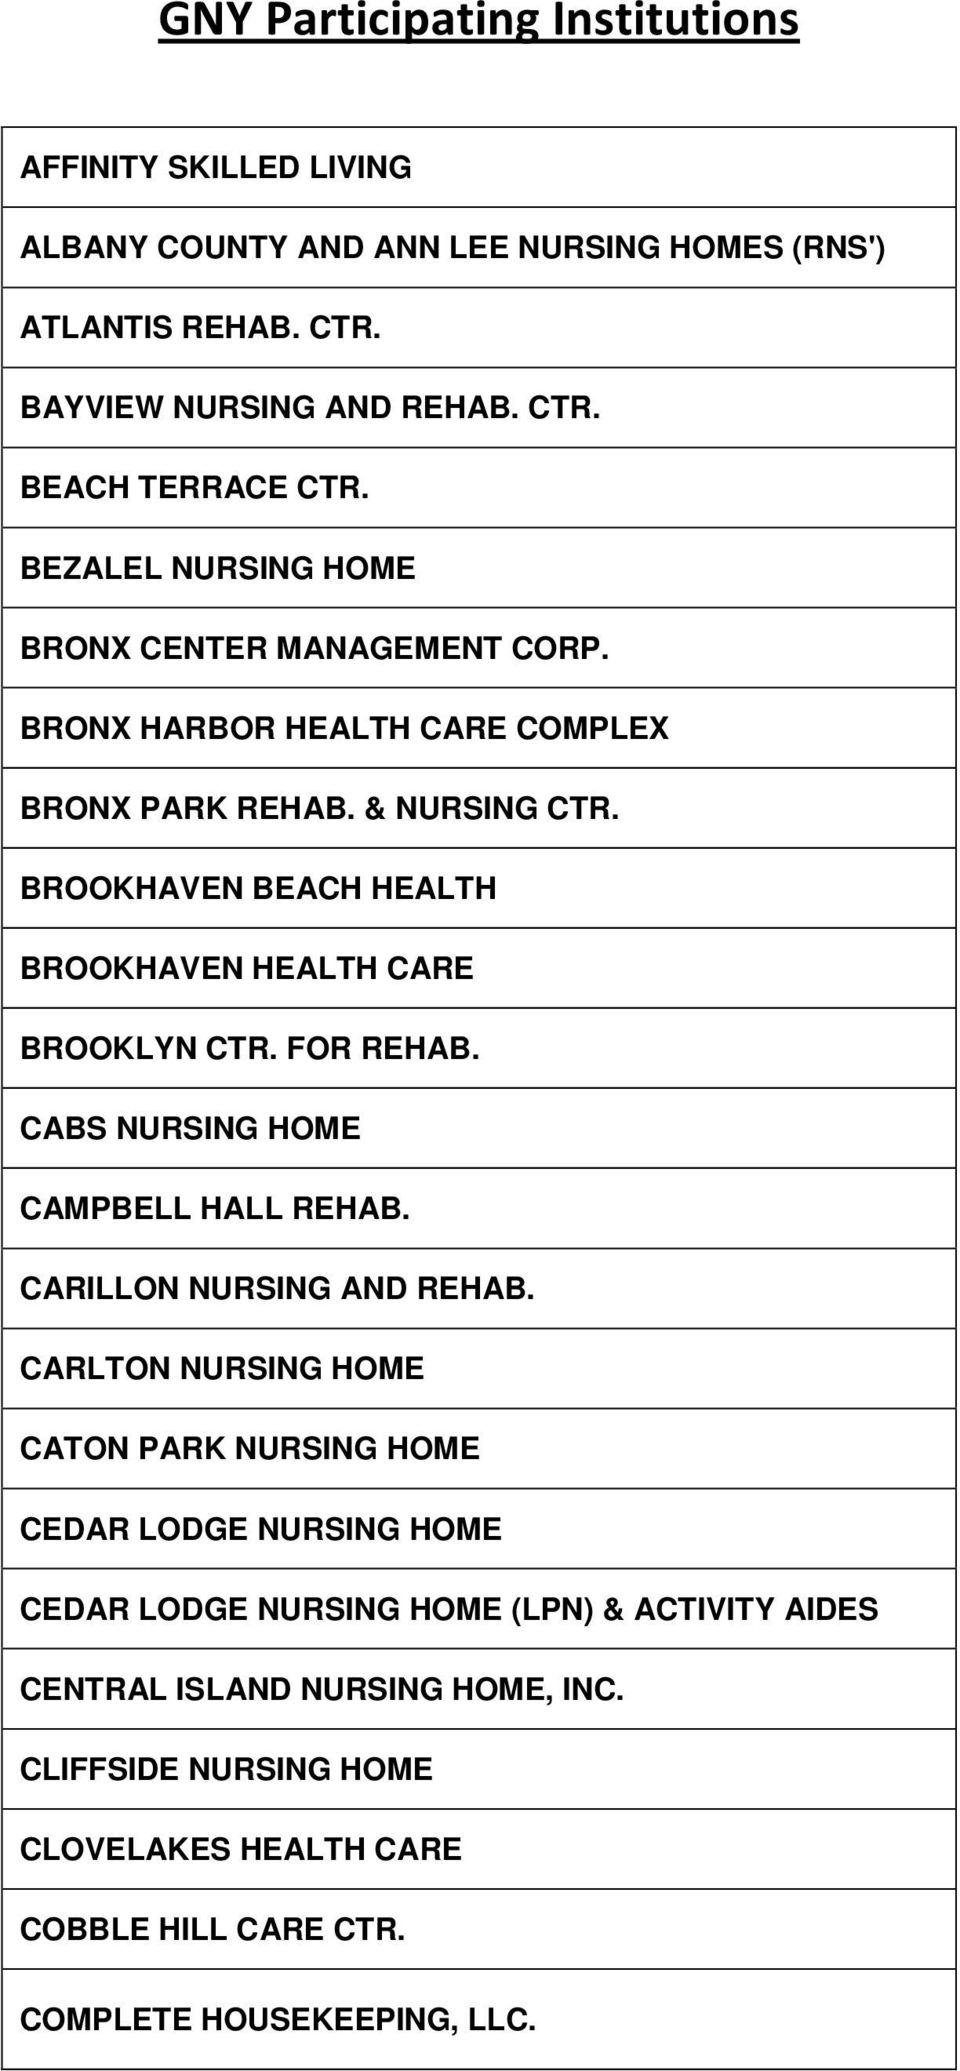 BROOKHAVEN BEACH HEALTH BROOKHAVEN HEALTH CARE BROOKLYN CTR. FOR REHAB. CABS NURSING HOME CAMPBELL HALL REHAB. CARILLON NURSING AND REHAB.